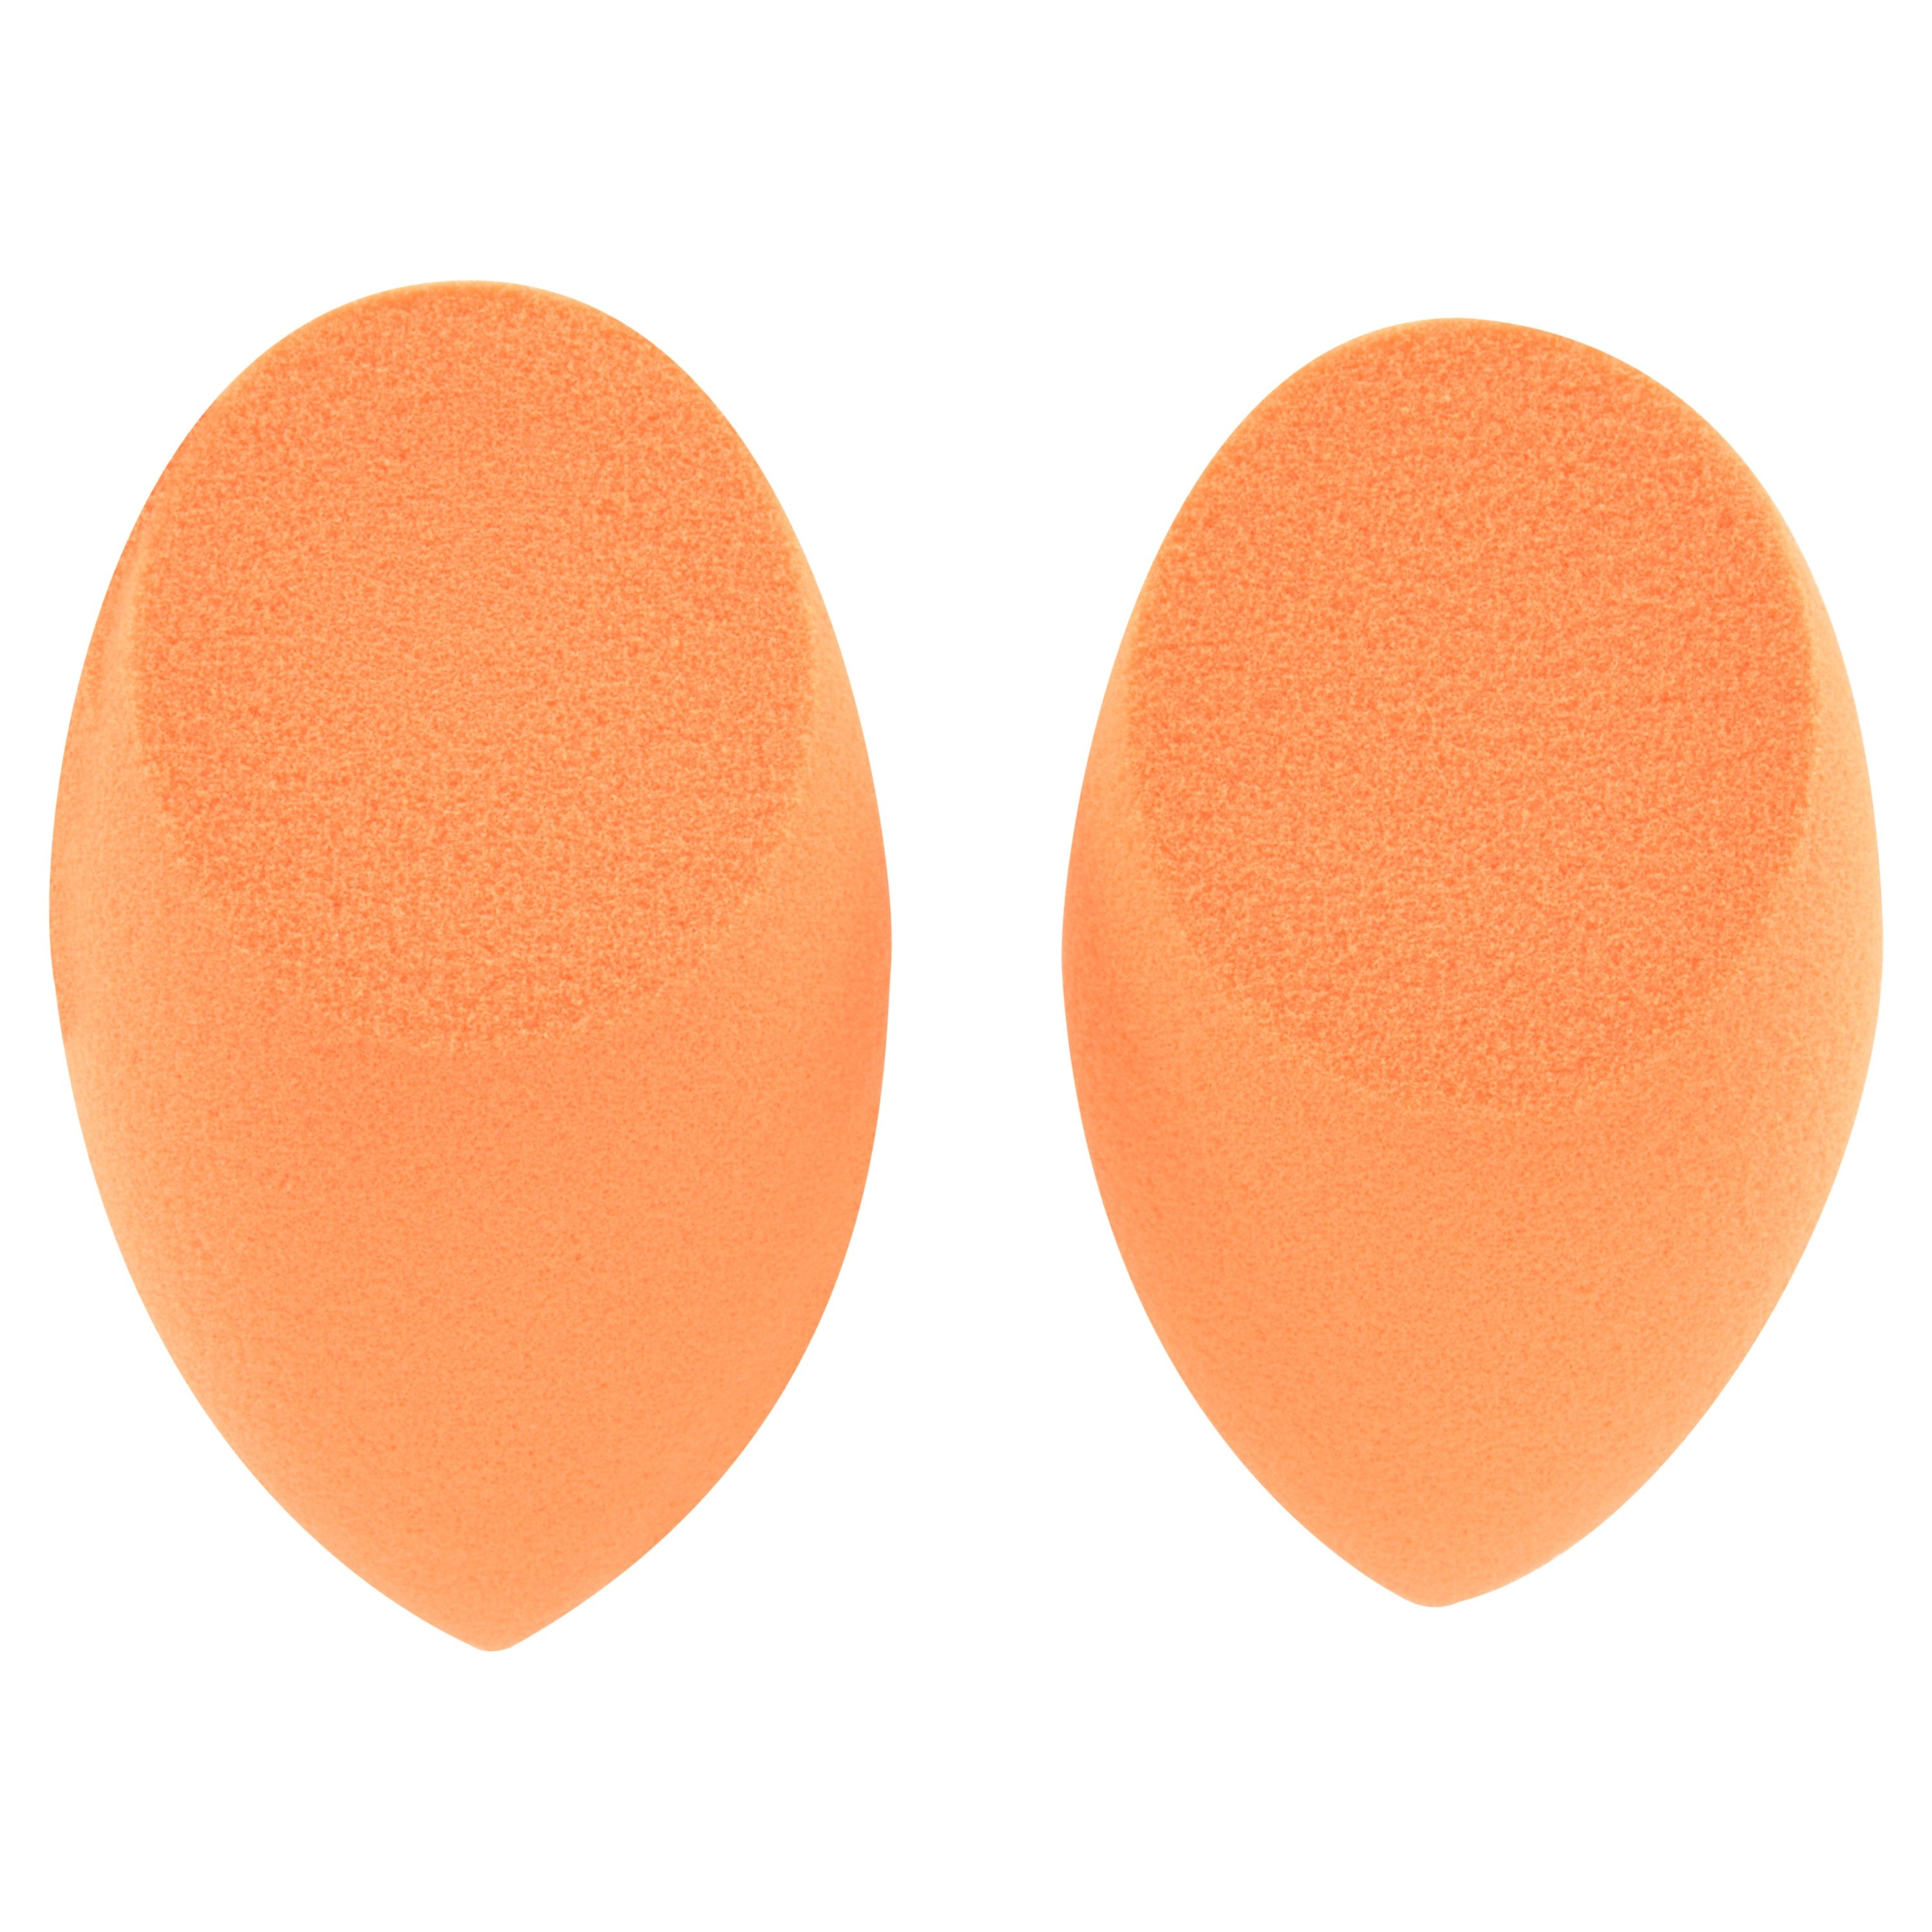 Real Techniques MIRACLE COMPLEXION SPONGE 2 PACK